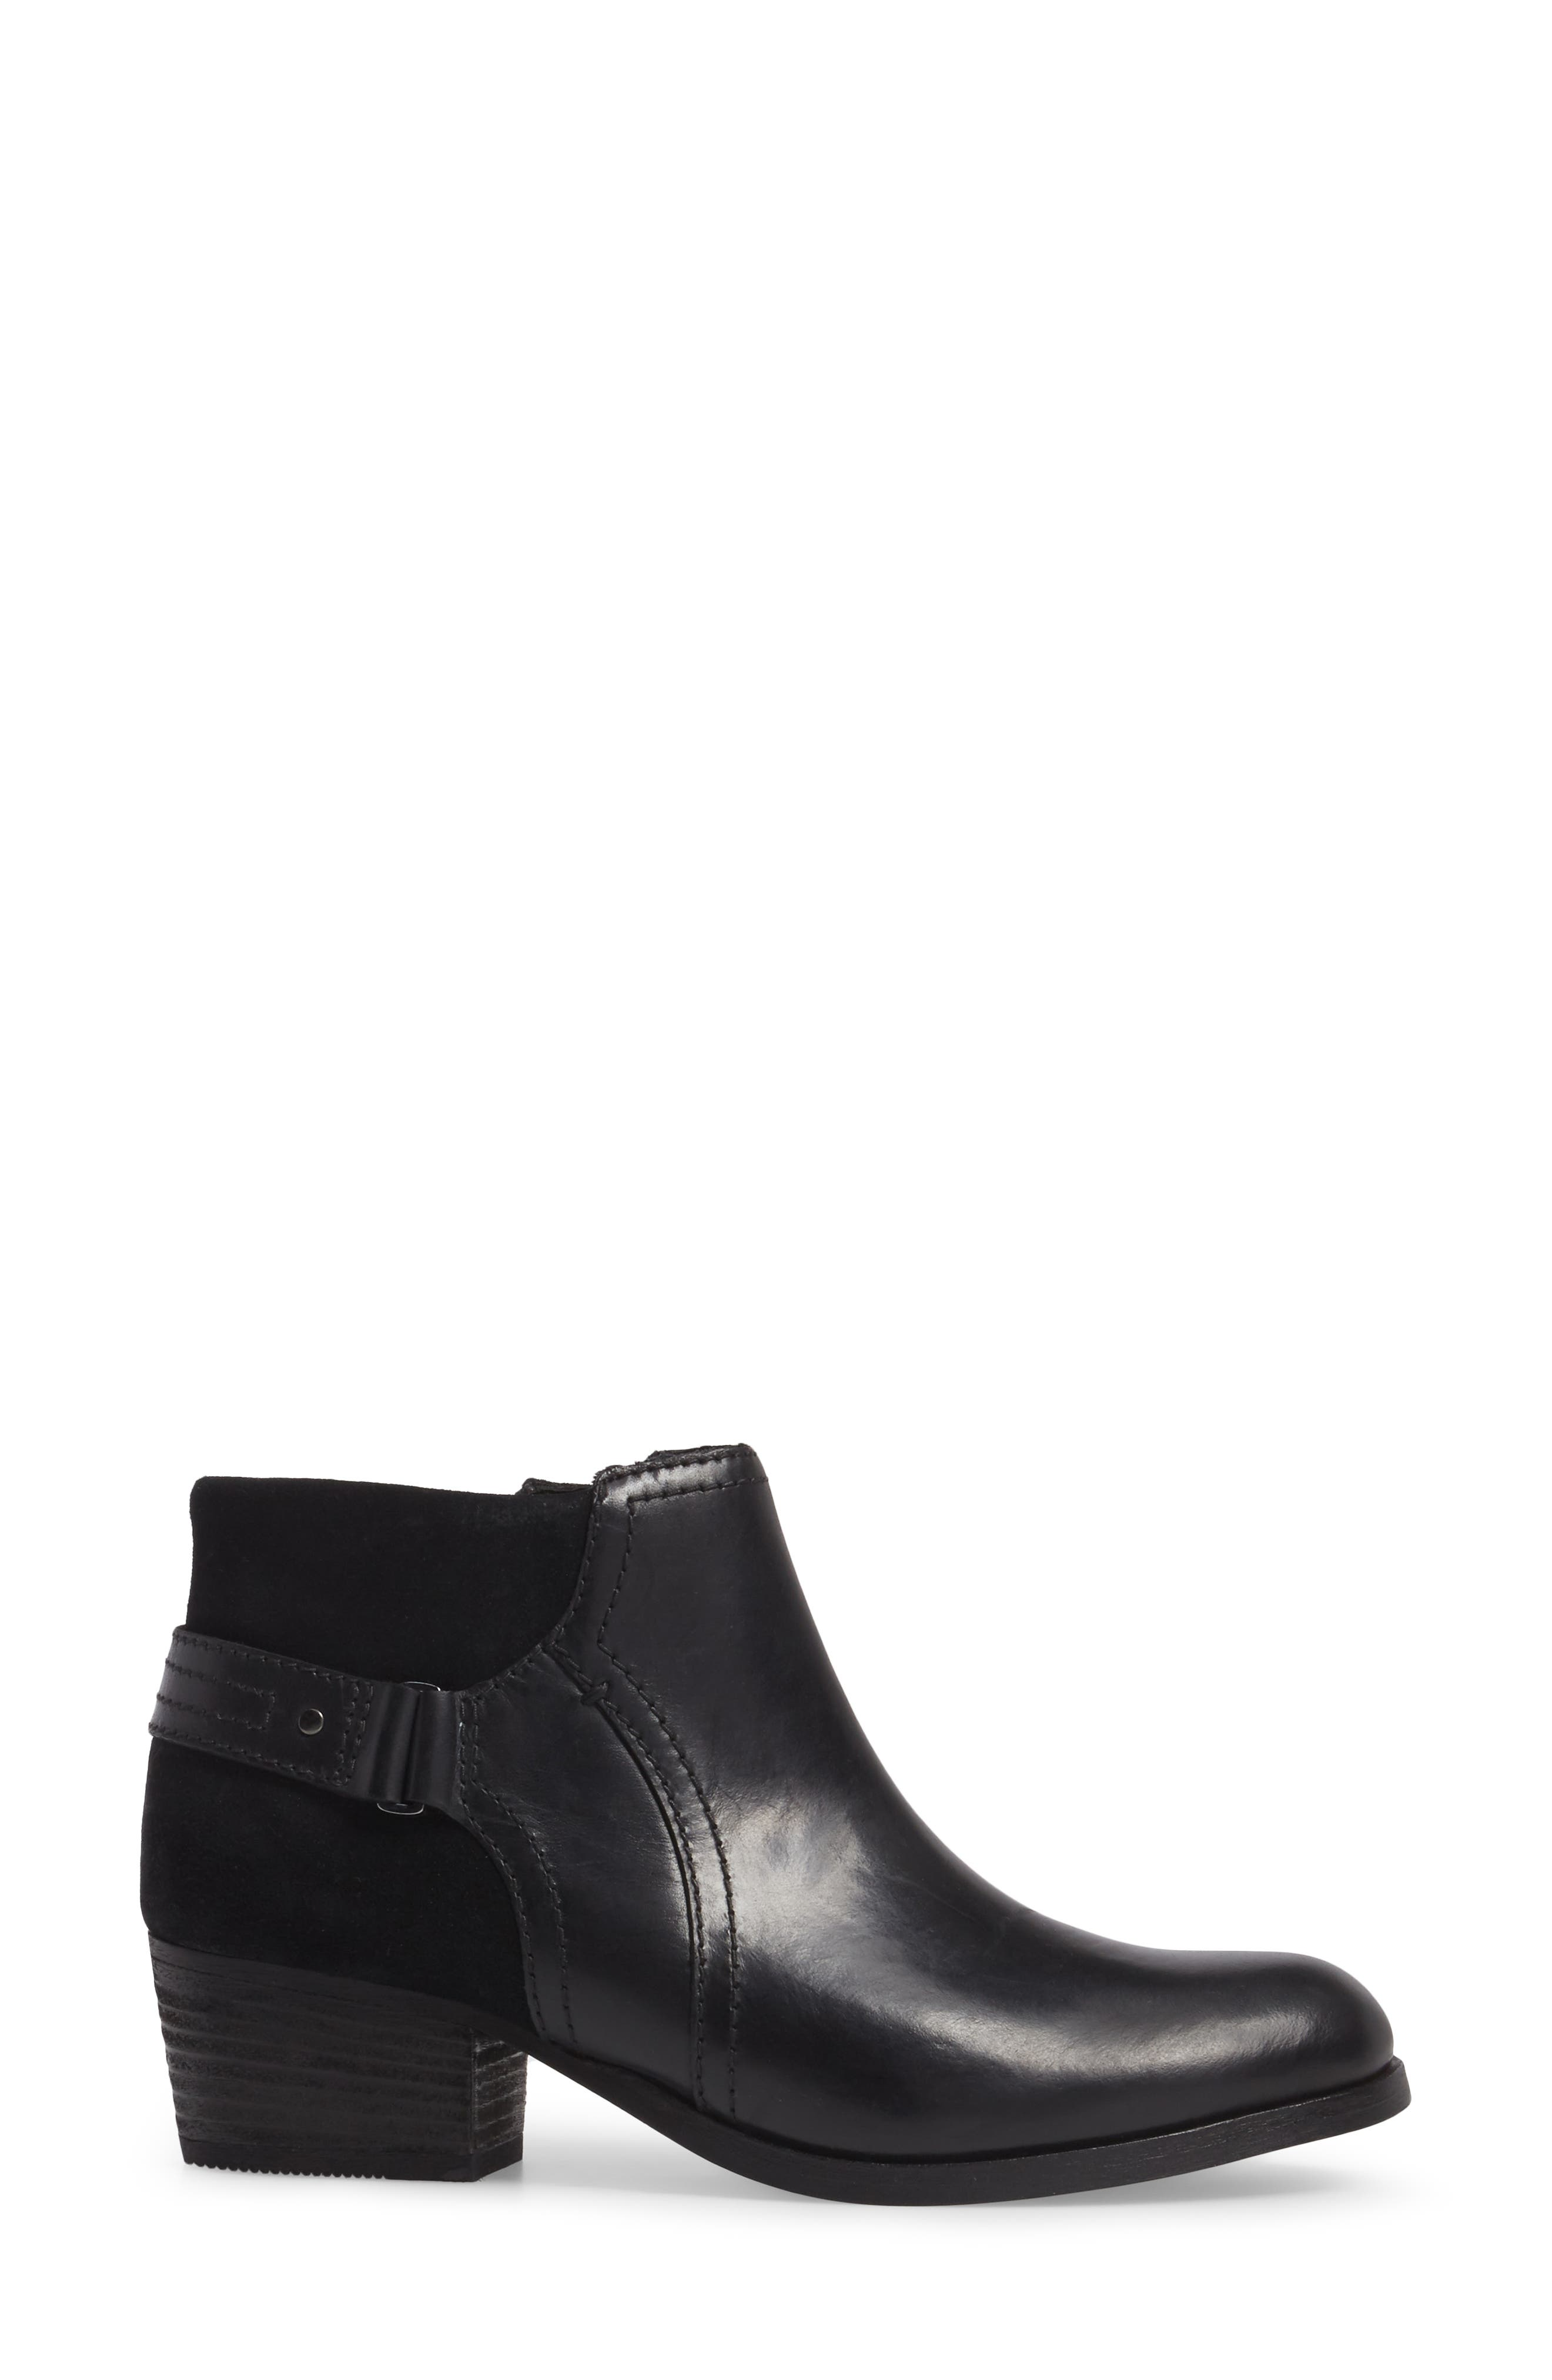 Maypearl Lilac Bootie,                             Alternate thumbnail 3, color,                             Black Leather